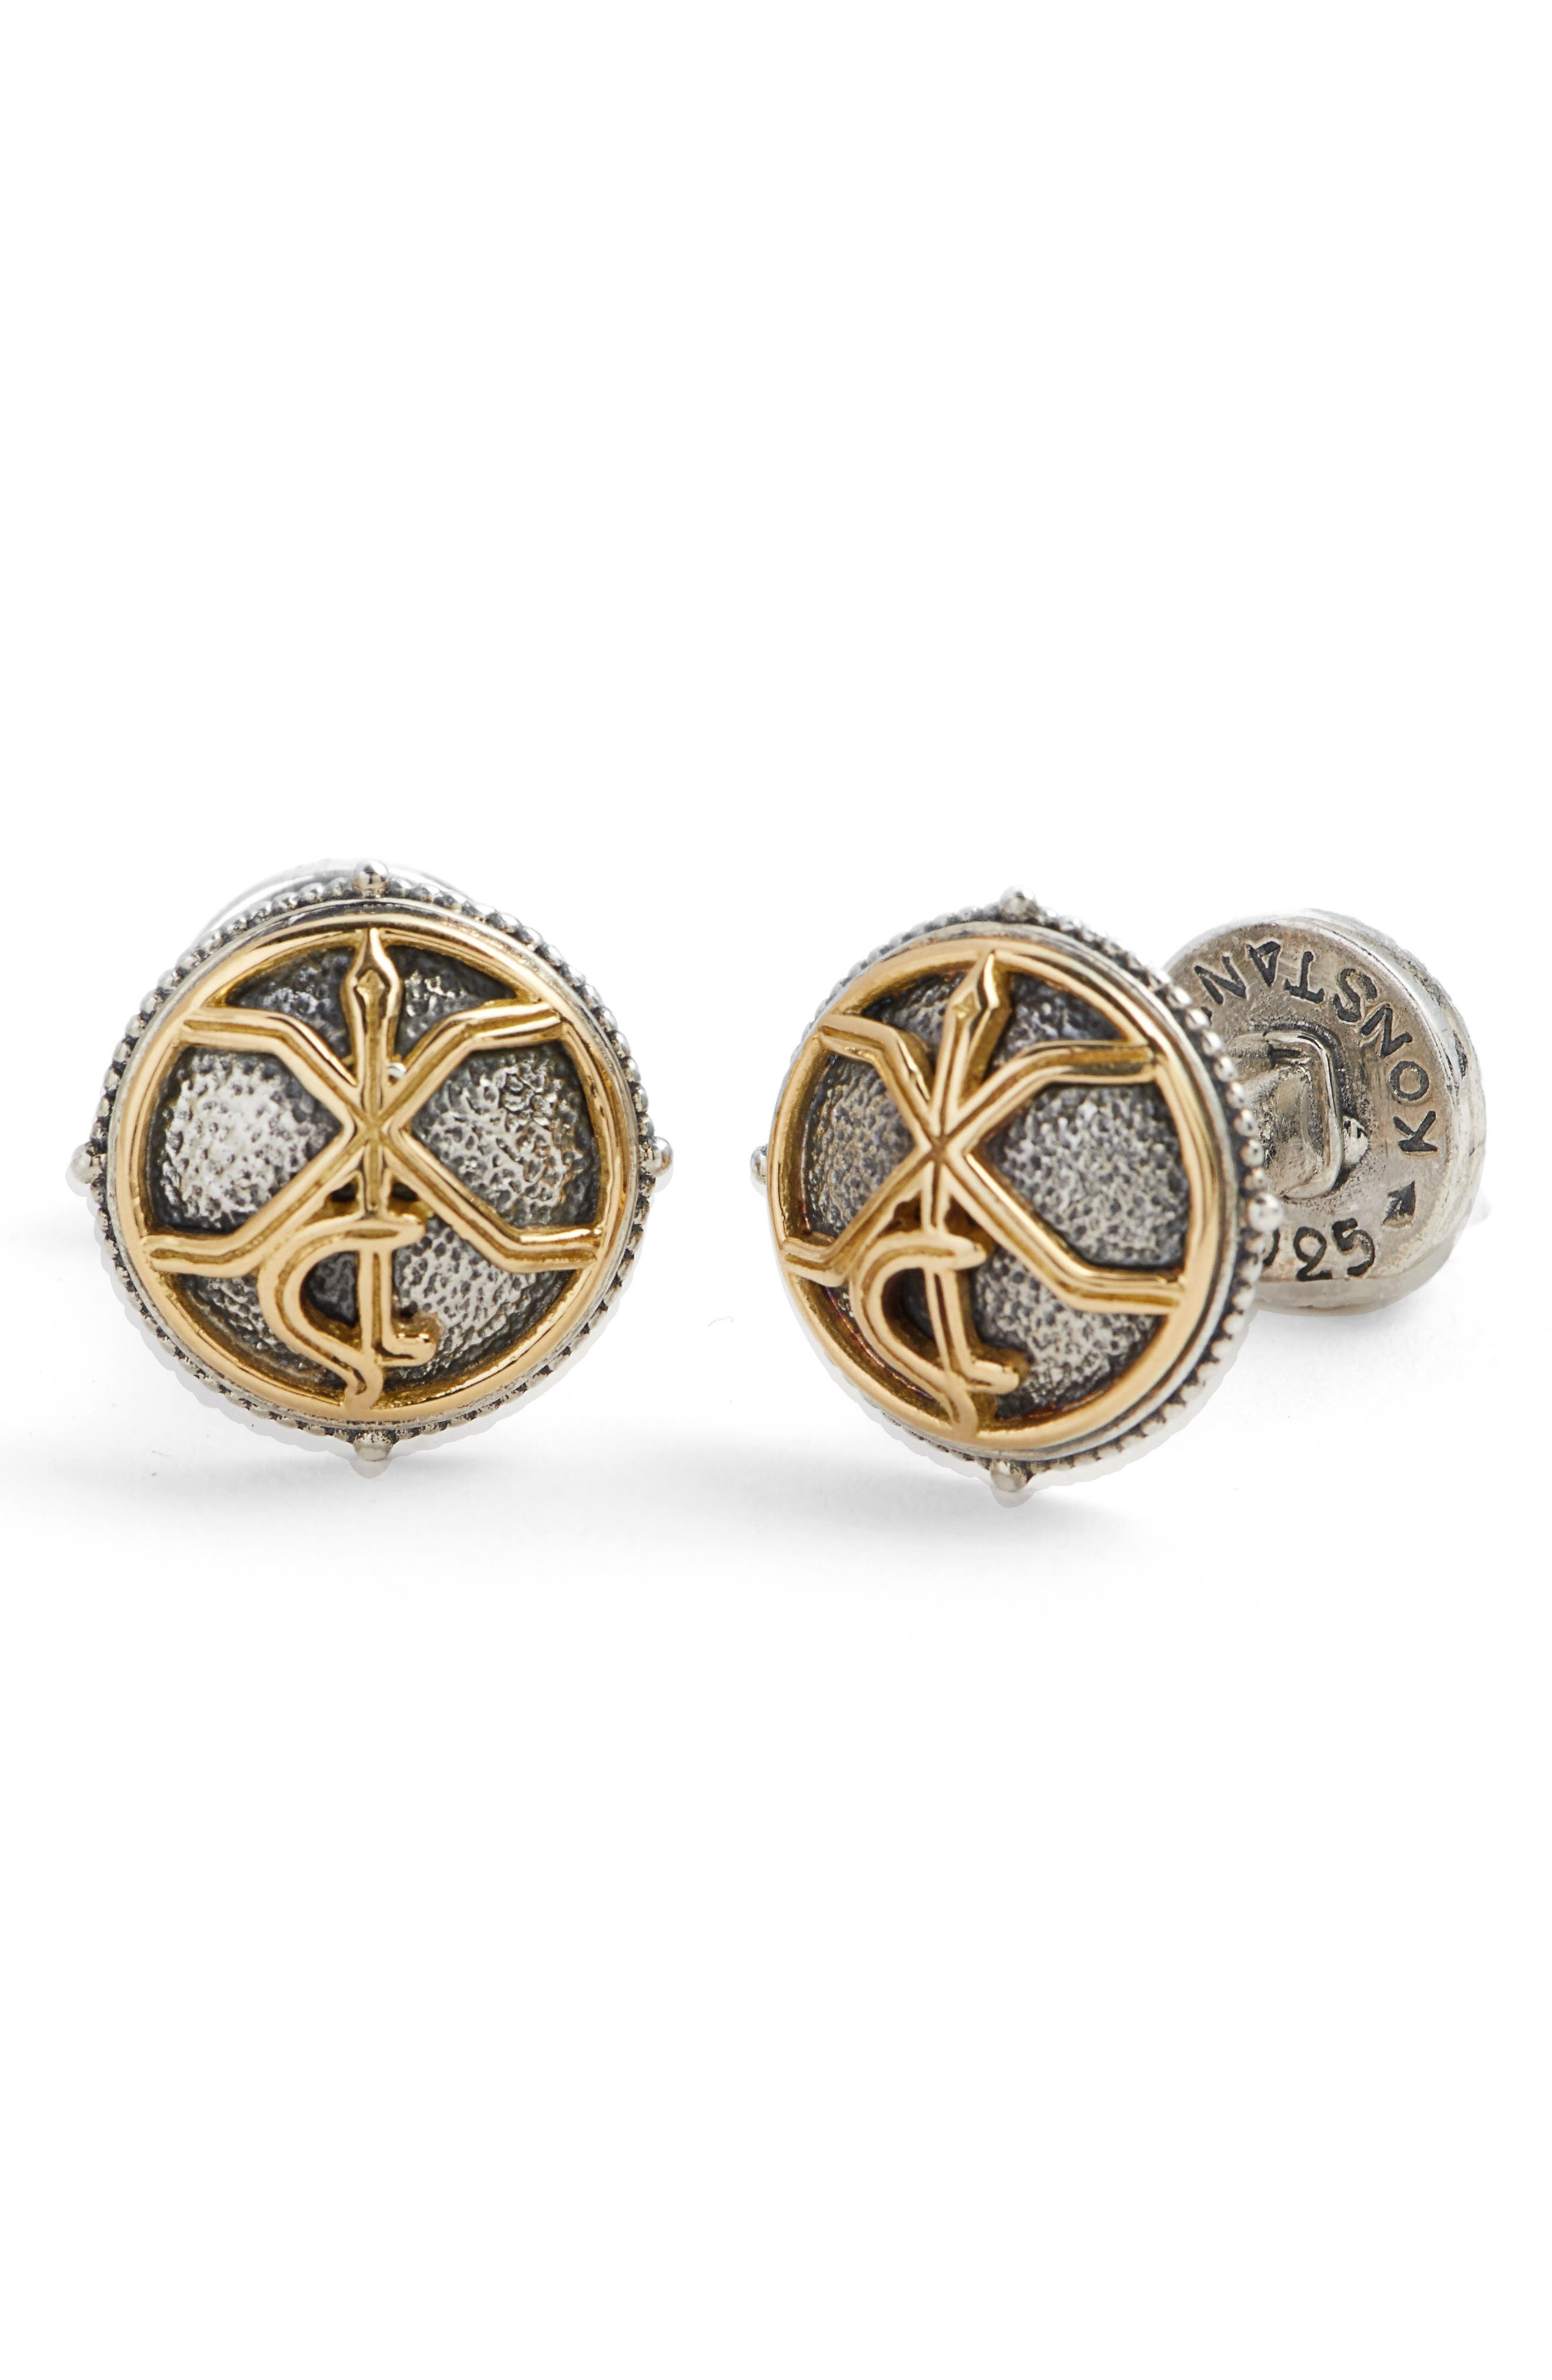 Stavros Round Cuff Links,                         Main,                         color, SILVER/ GOLD